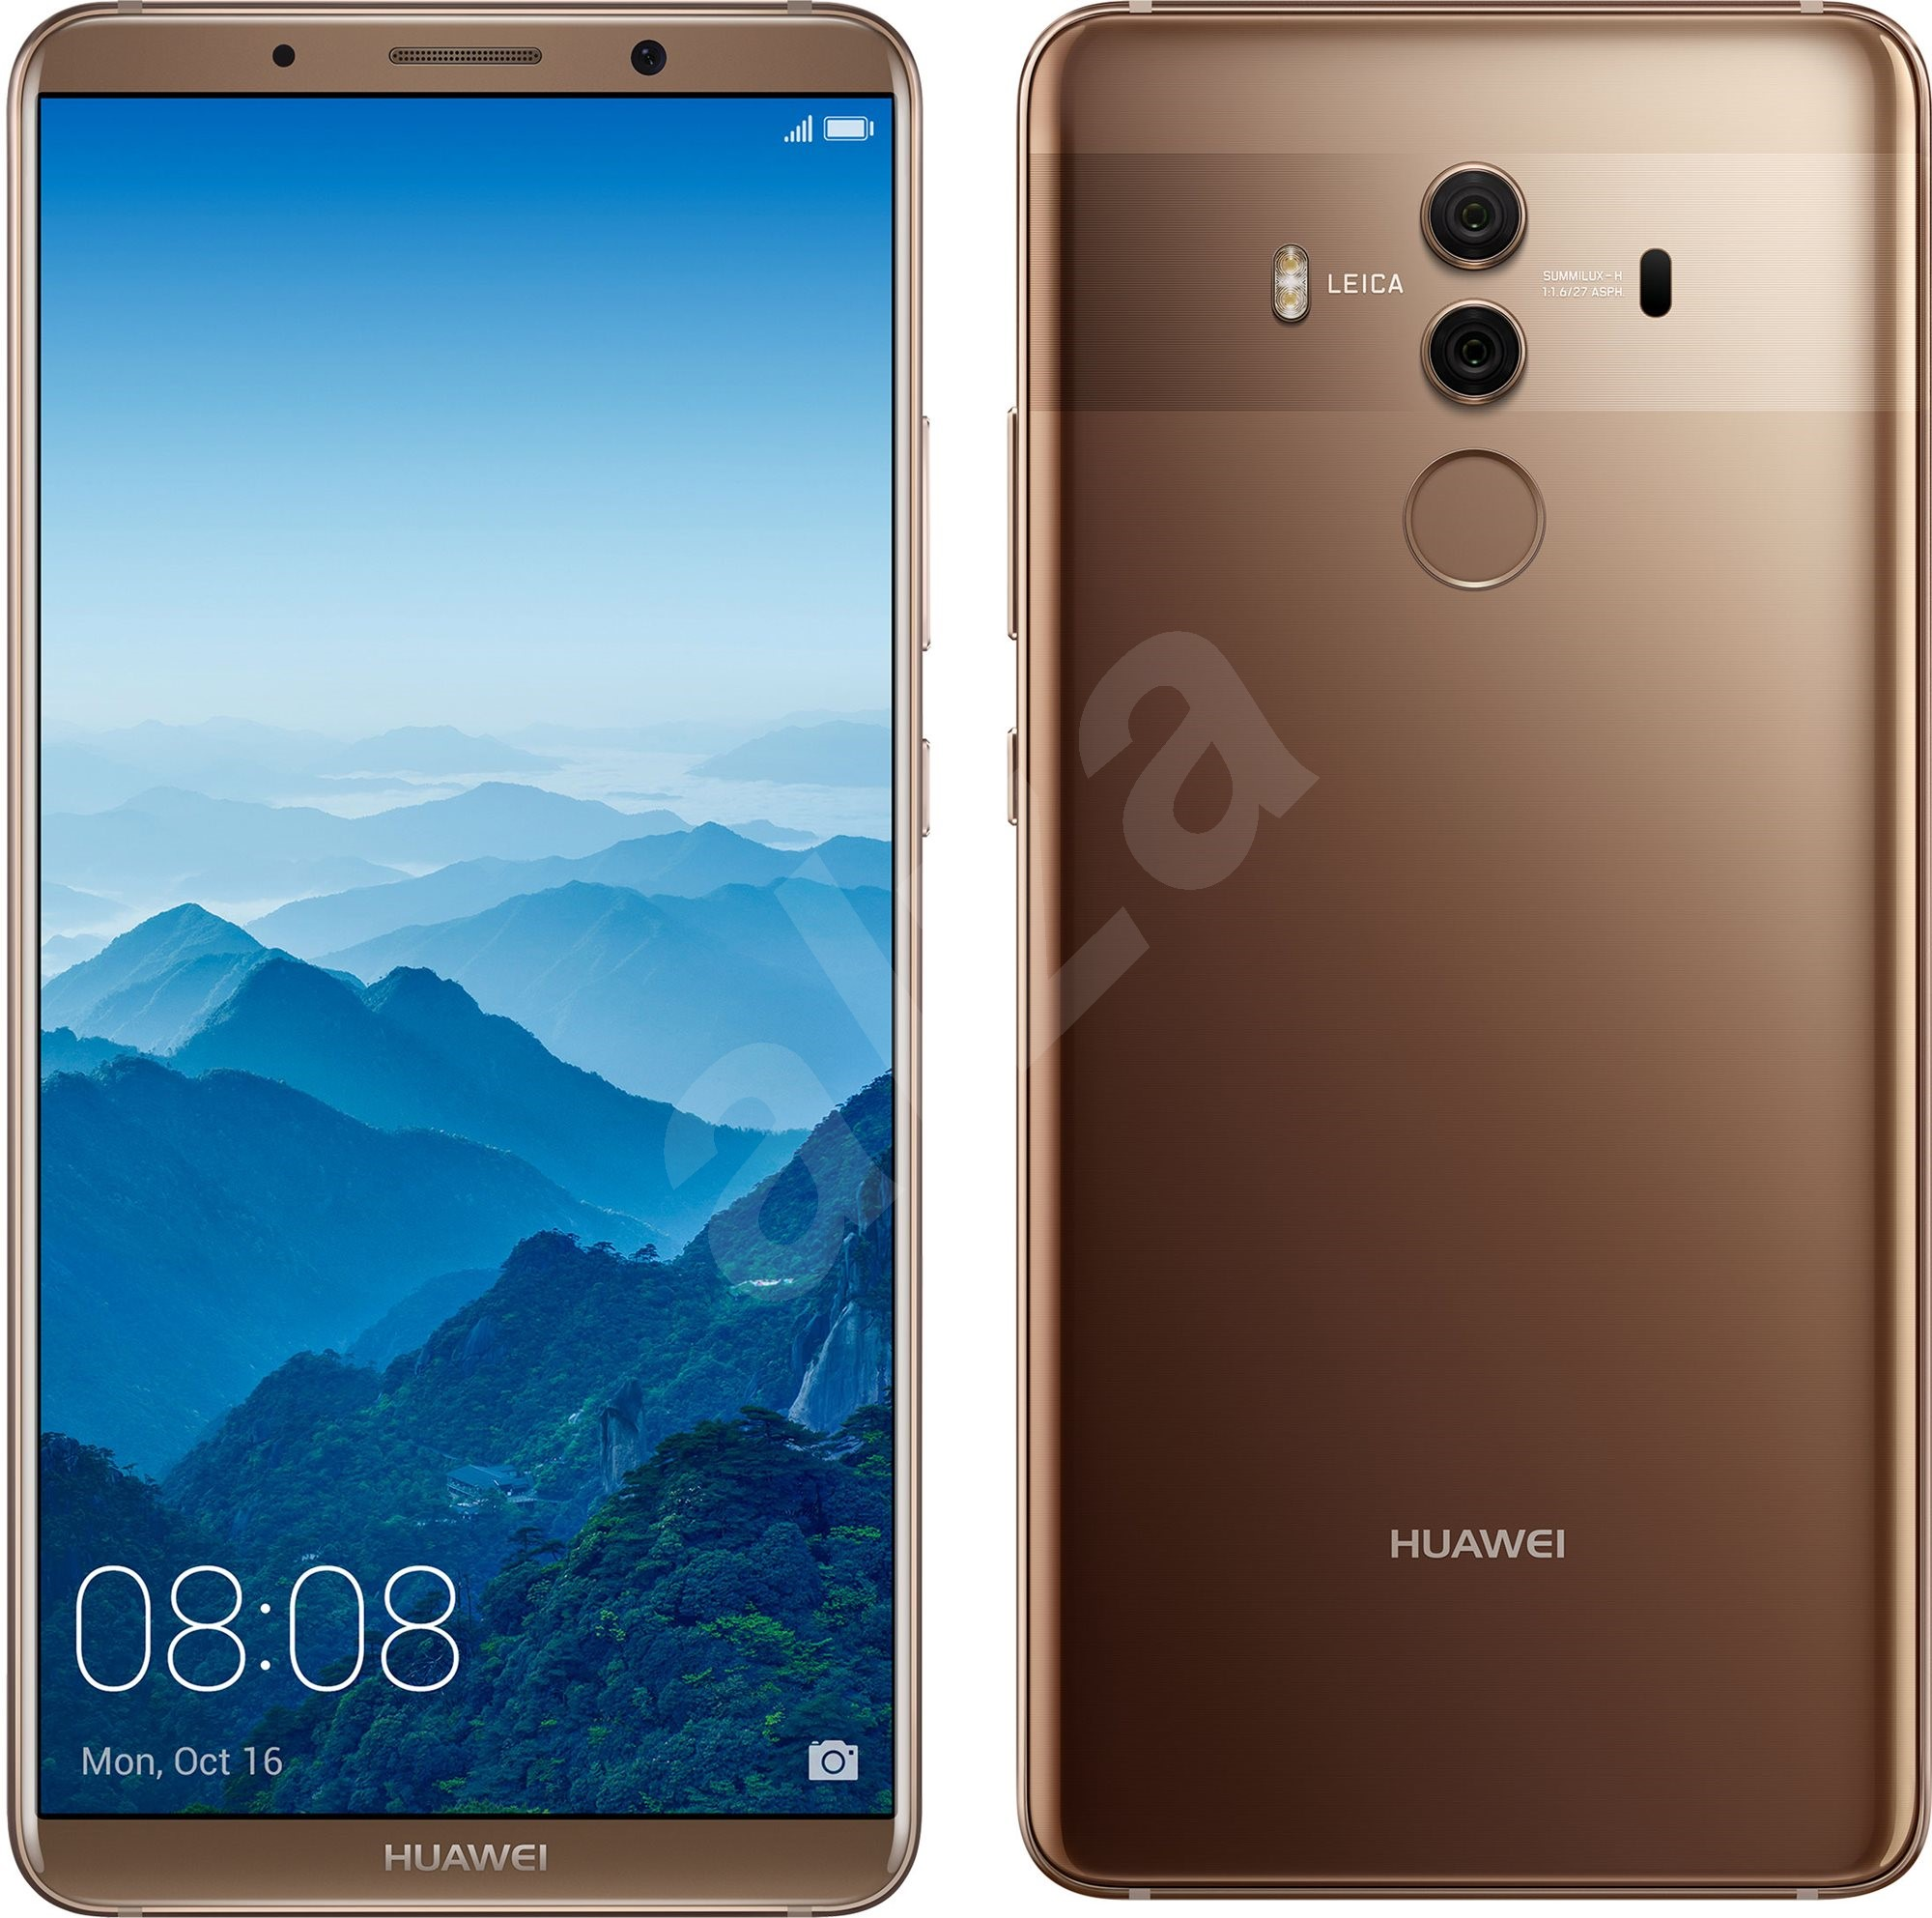 huawei mate 10 pro mocha brown handy. Black Bedroom Furniture Sets. Home Design Ideas